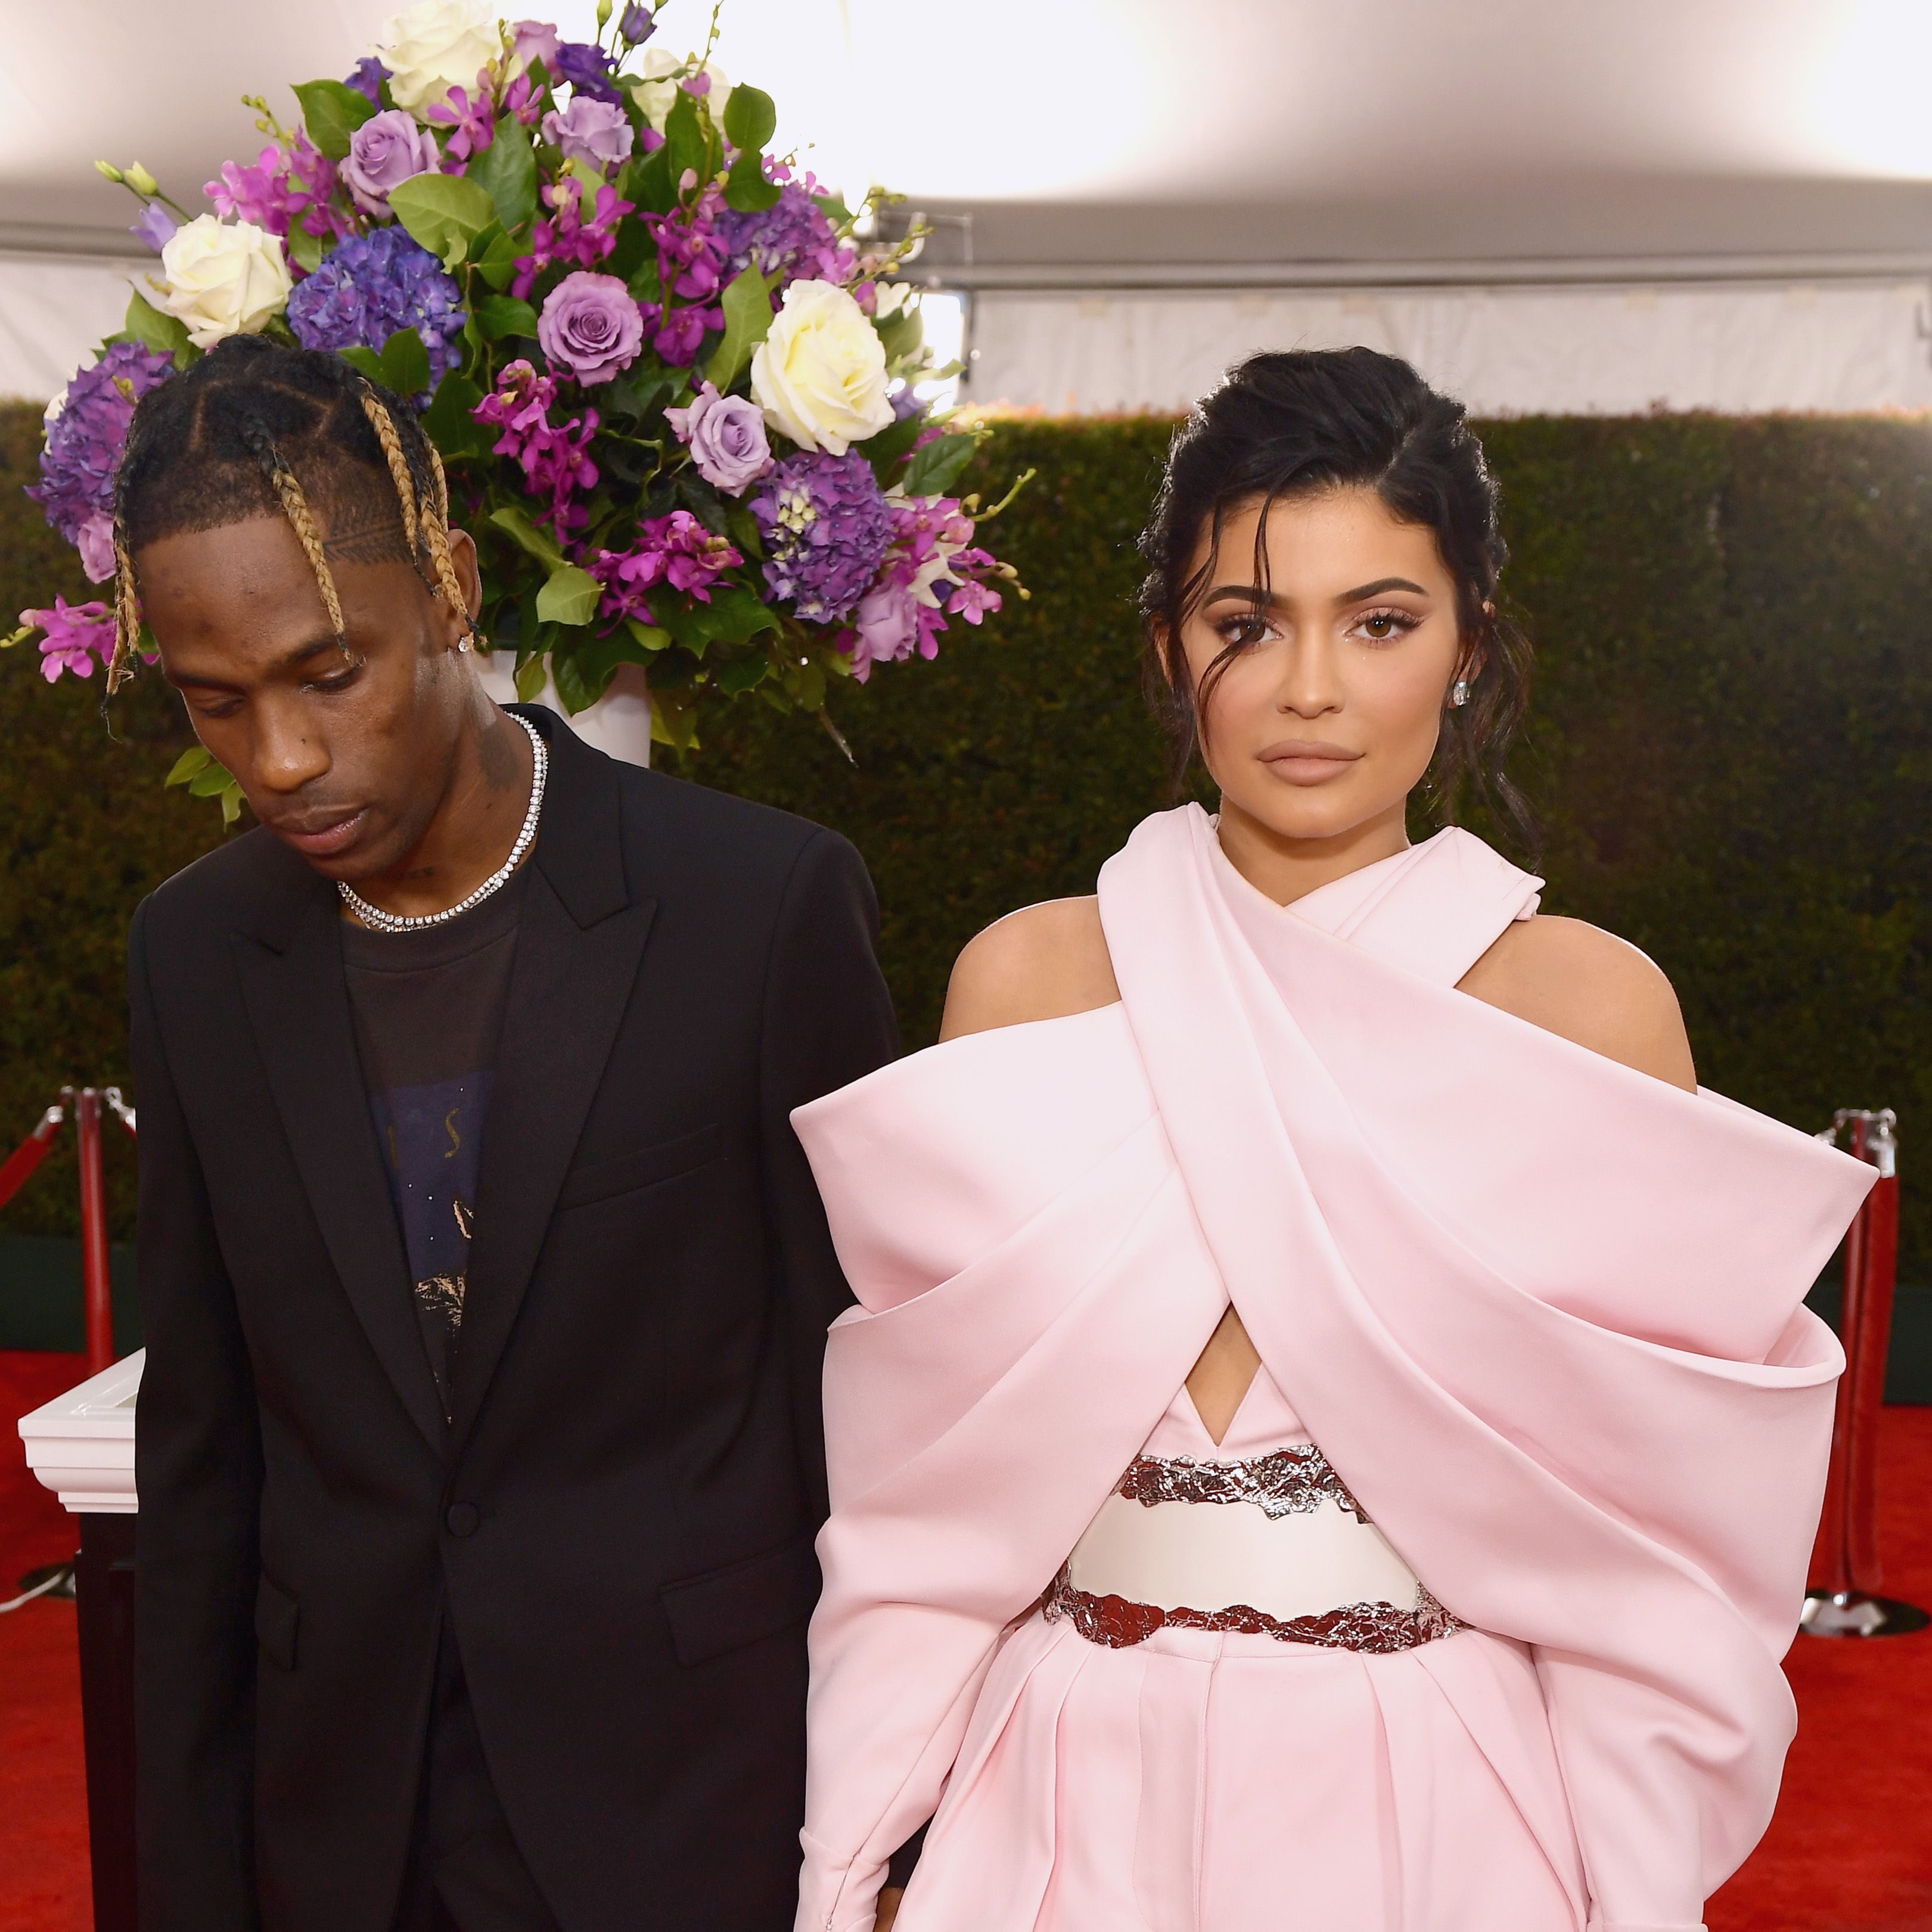 Kylie Jenner & Travis Scott Just Gave Stormi the Most Precious Diamond Necklace